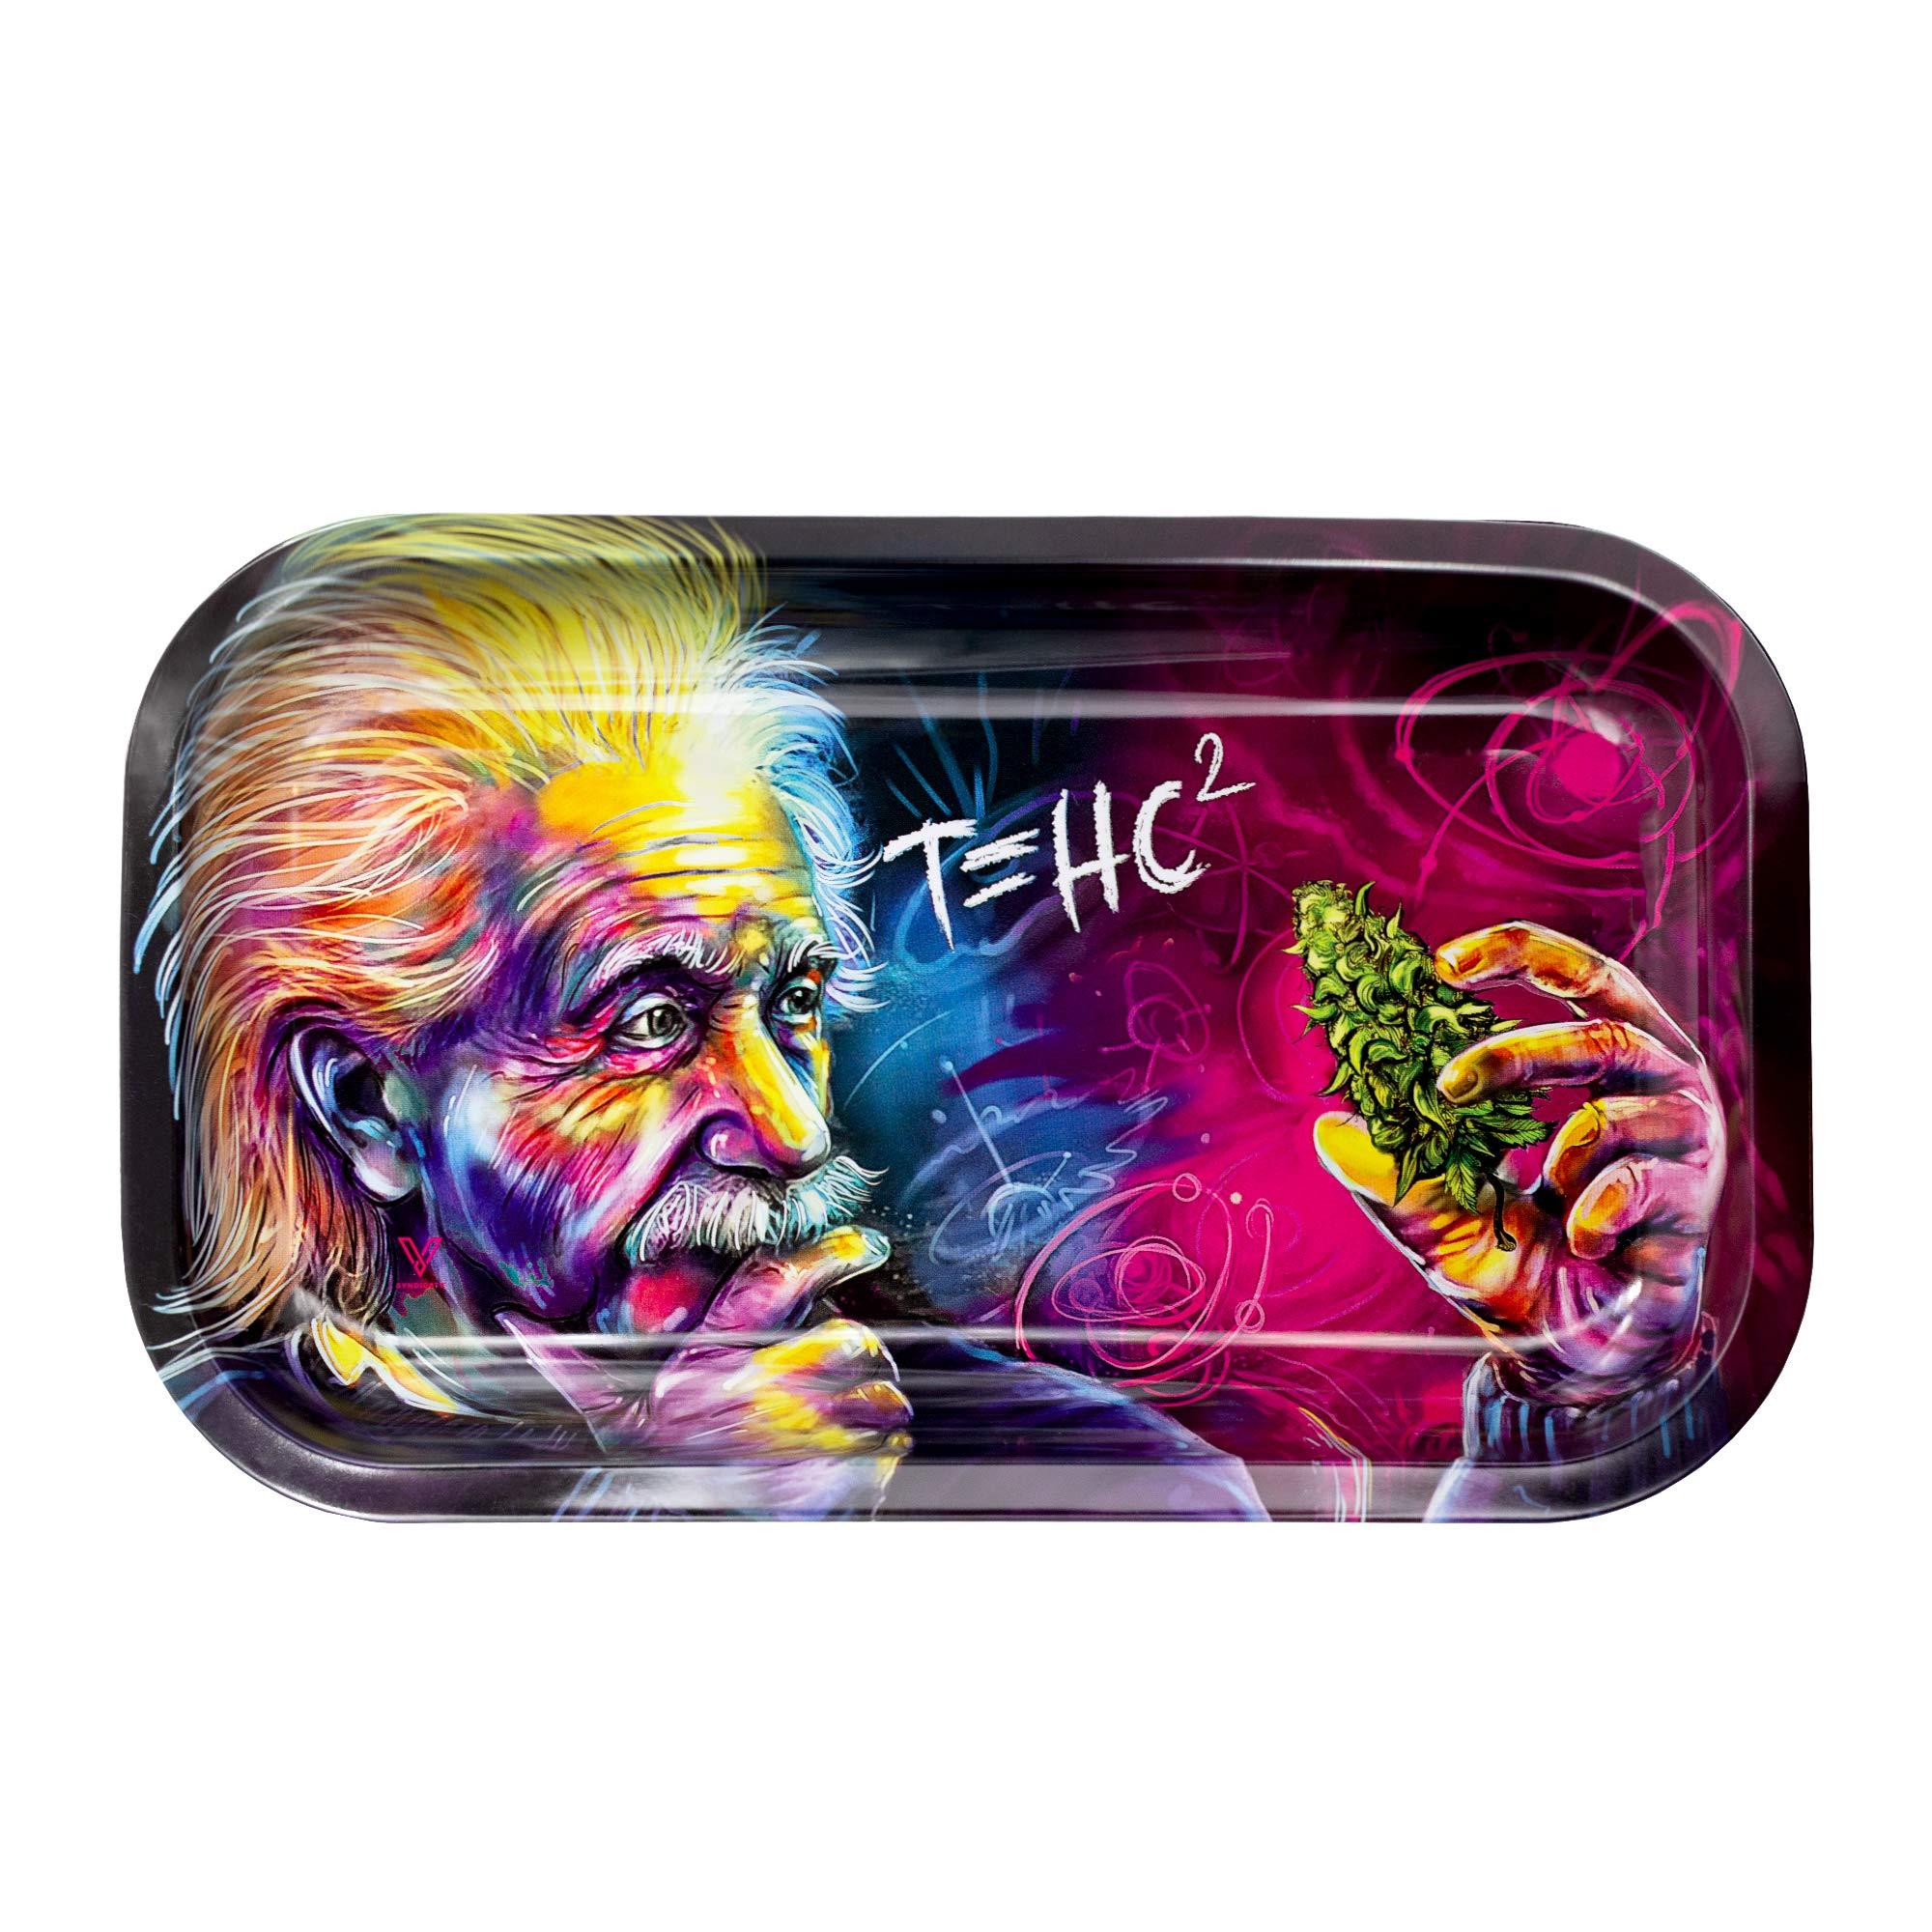 Metal Rolling Tray, T=HC2 Einstein Design by V Syndicate, Medium (Available in 2 Sizes) by V. Syndicate